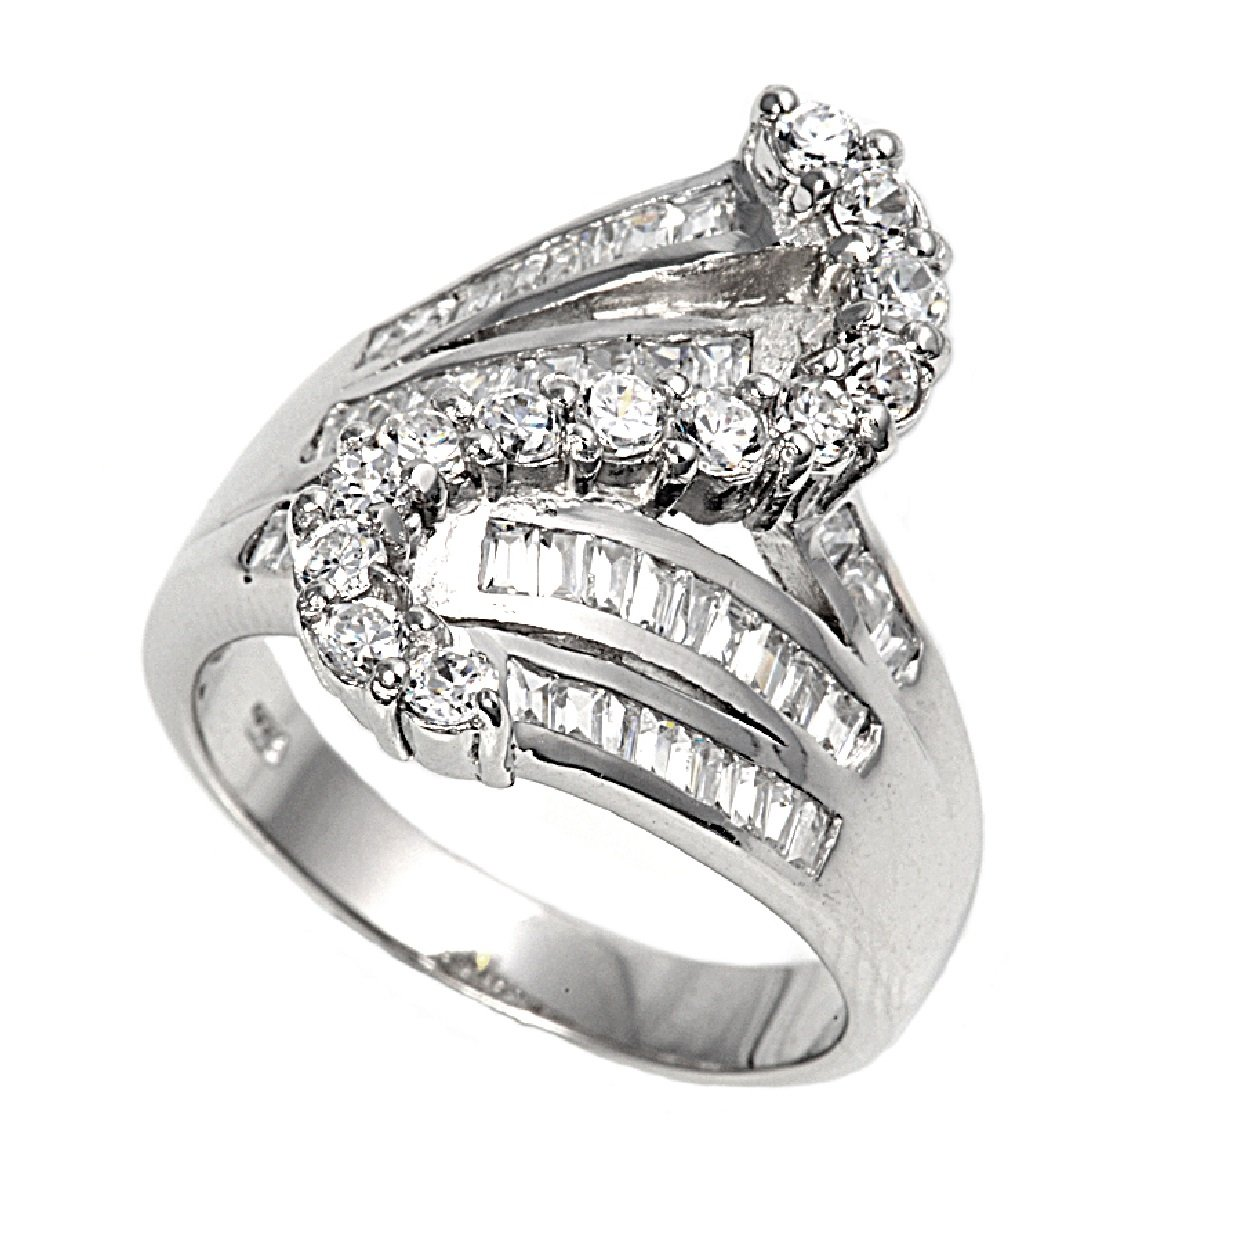 Cubic Zirconia Snake Design Ring 925 Sterling Silver Size 6